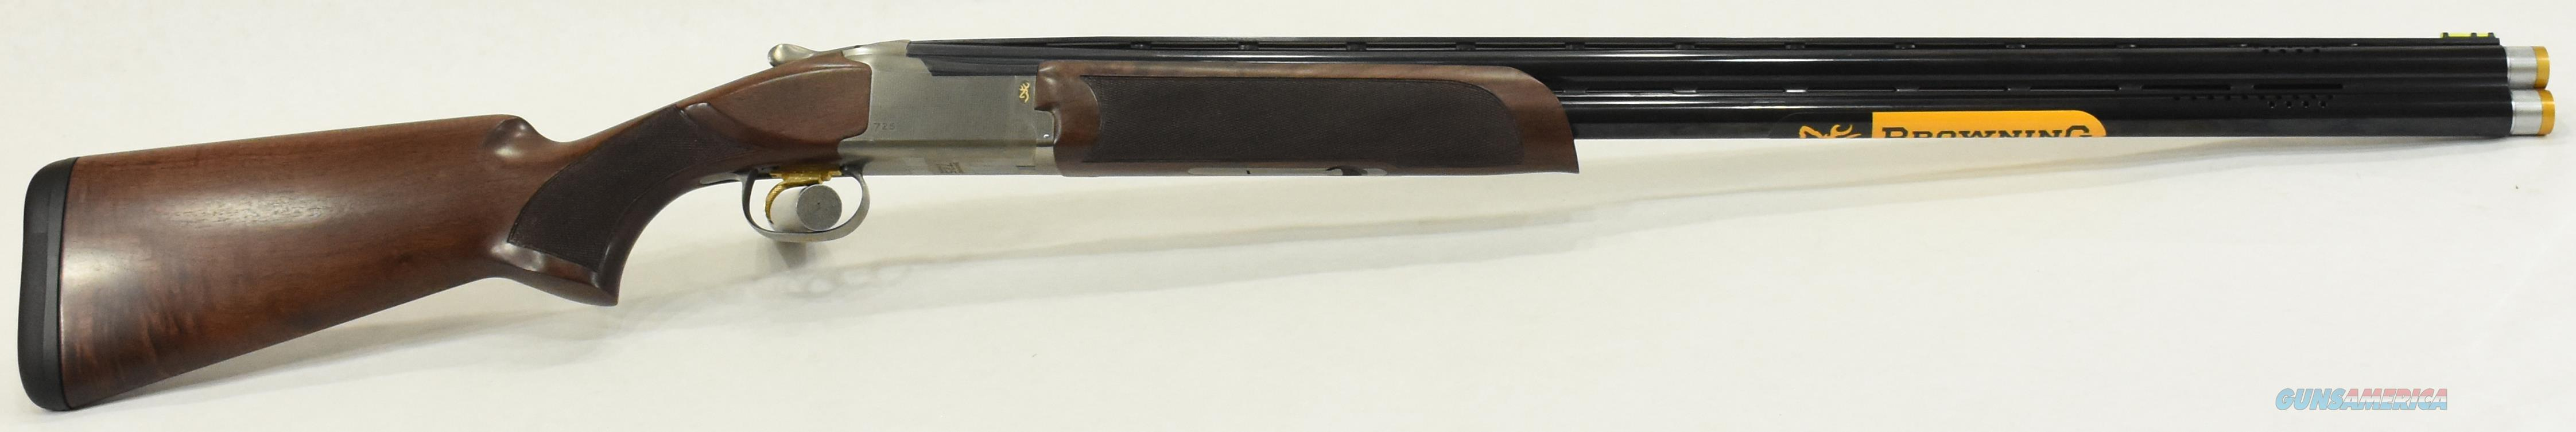 Citori 725 Sporting LH 12Ga 30-3In  0135833010  Guns > Shotguns > Browning Shotguns > Over Unders > Citori > Trap/Skeet